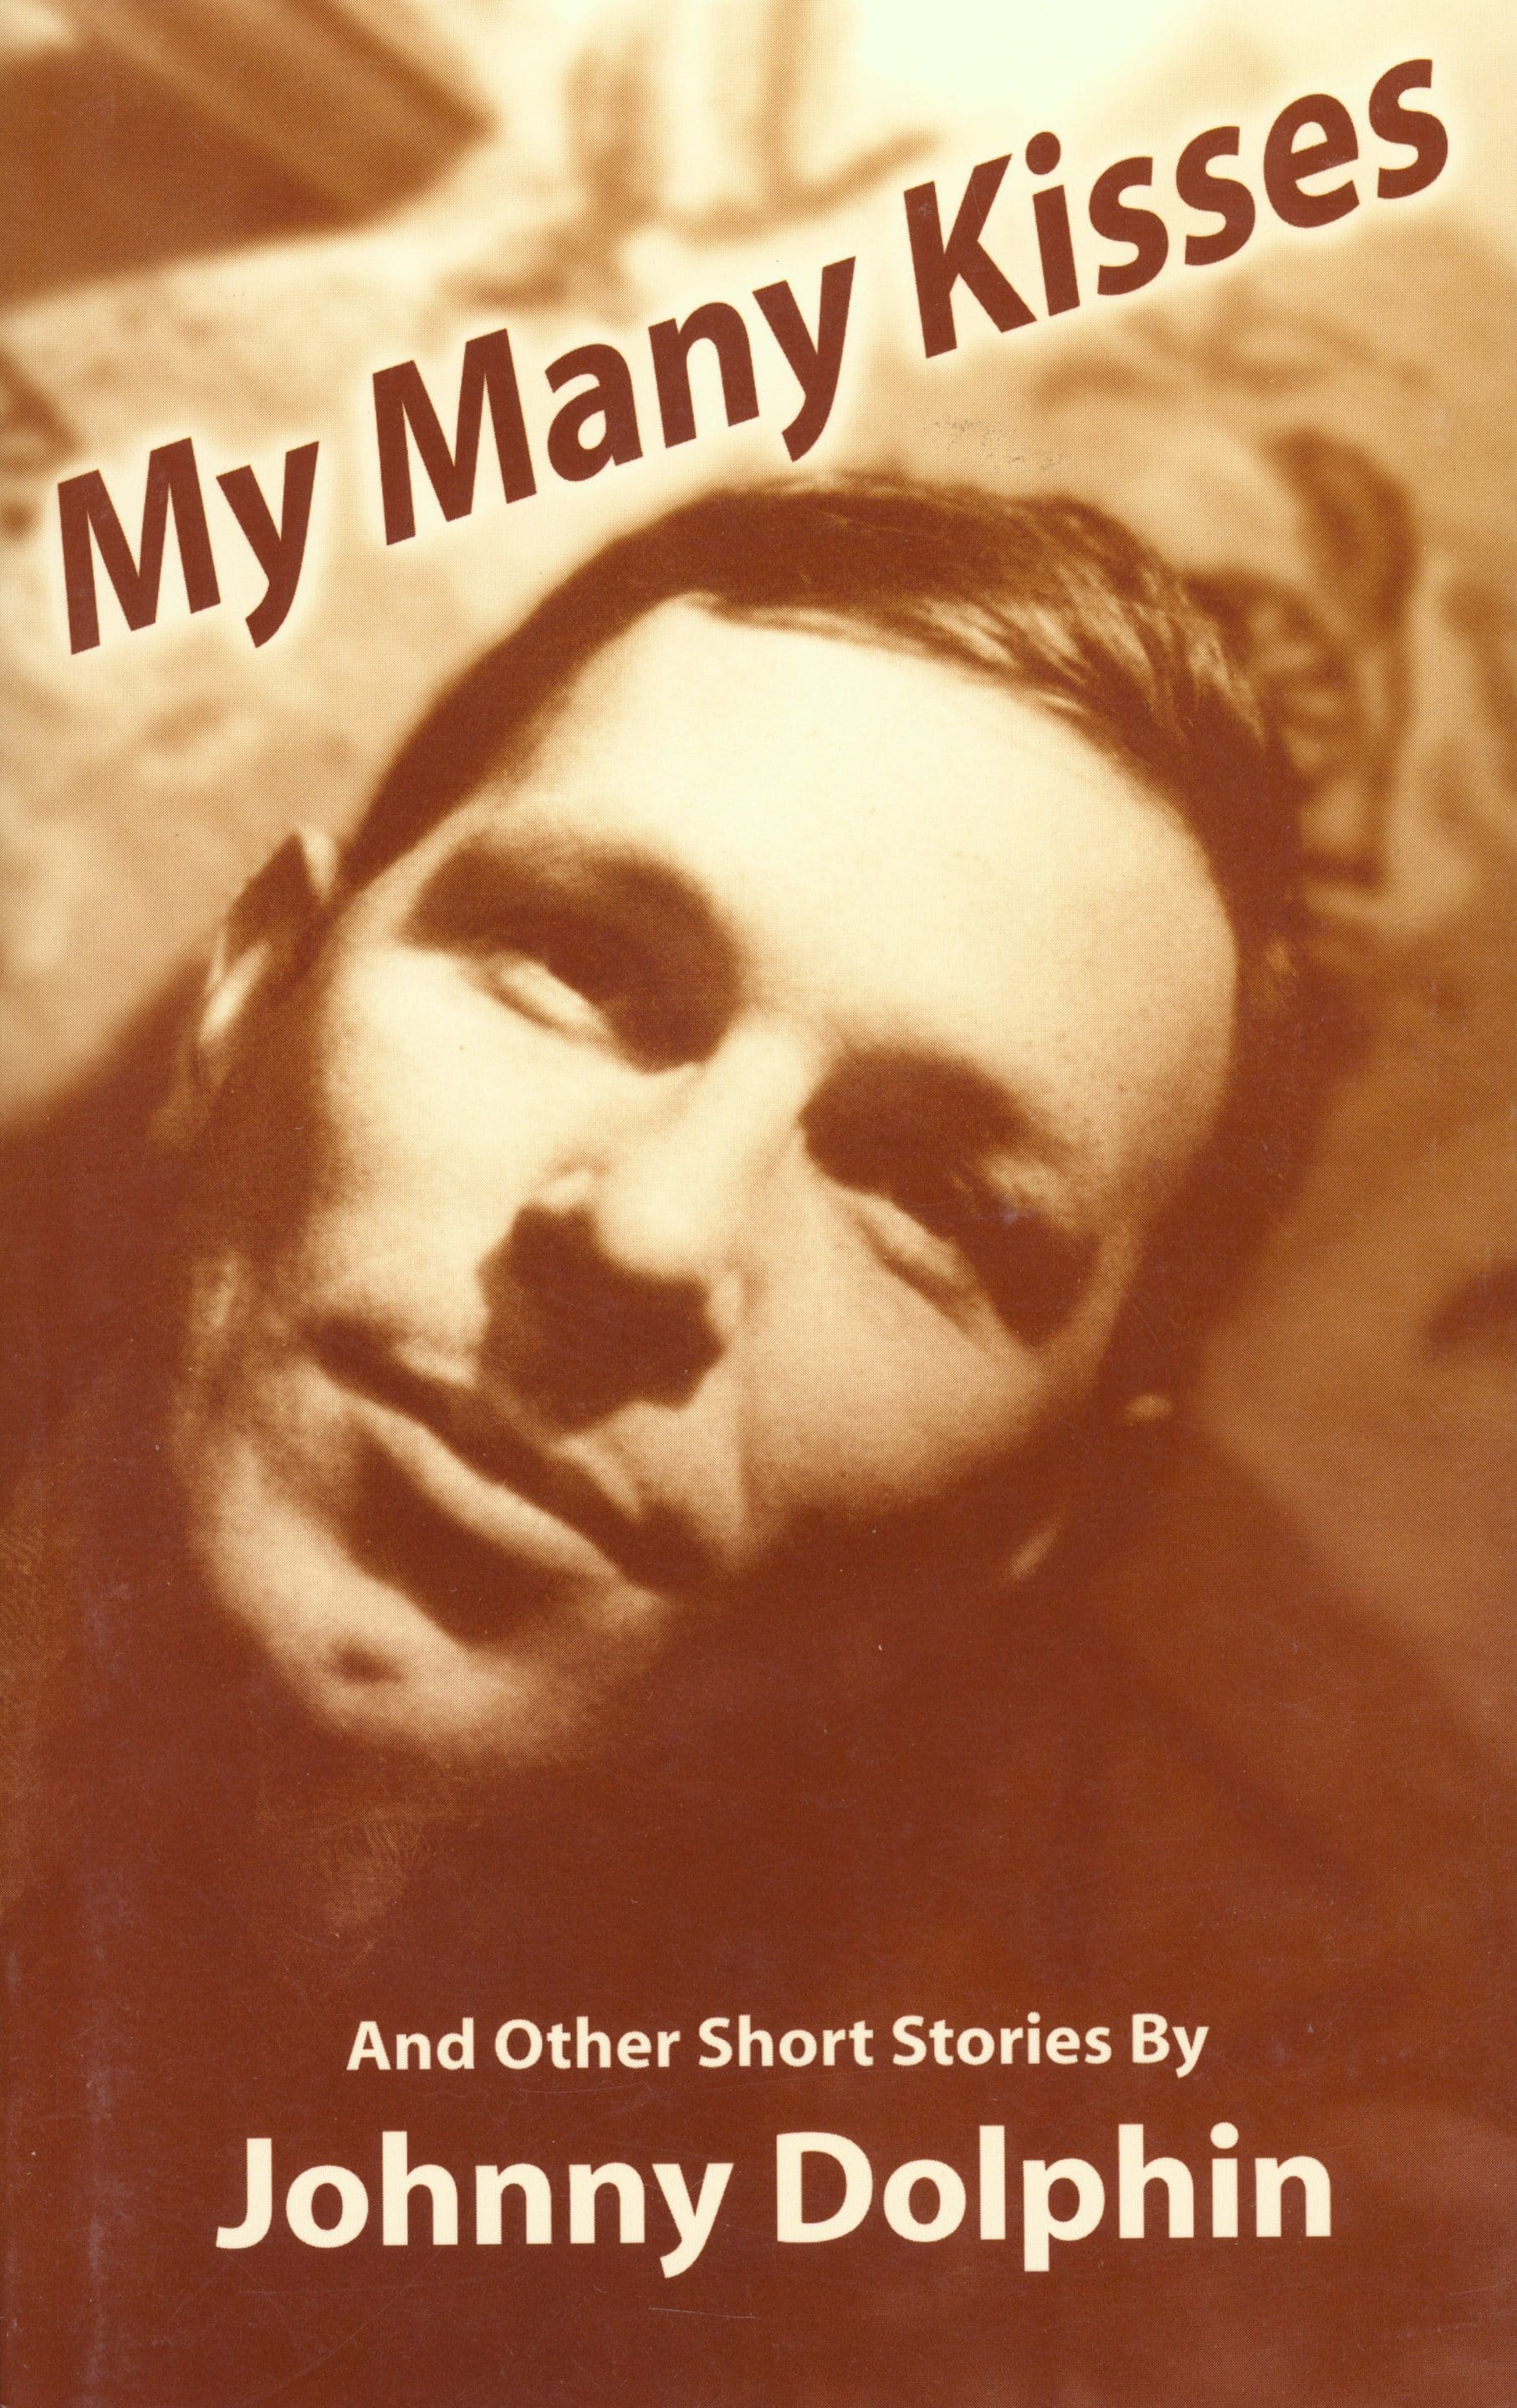 My Many Kisses and Other Short Stories